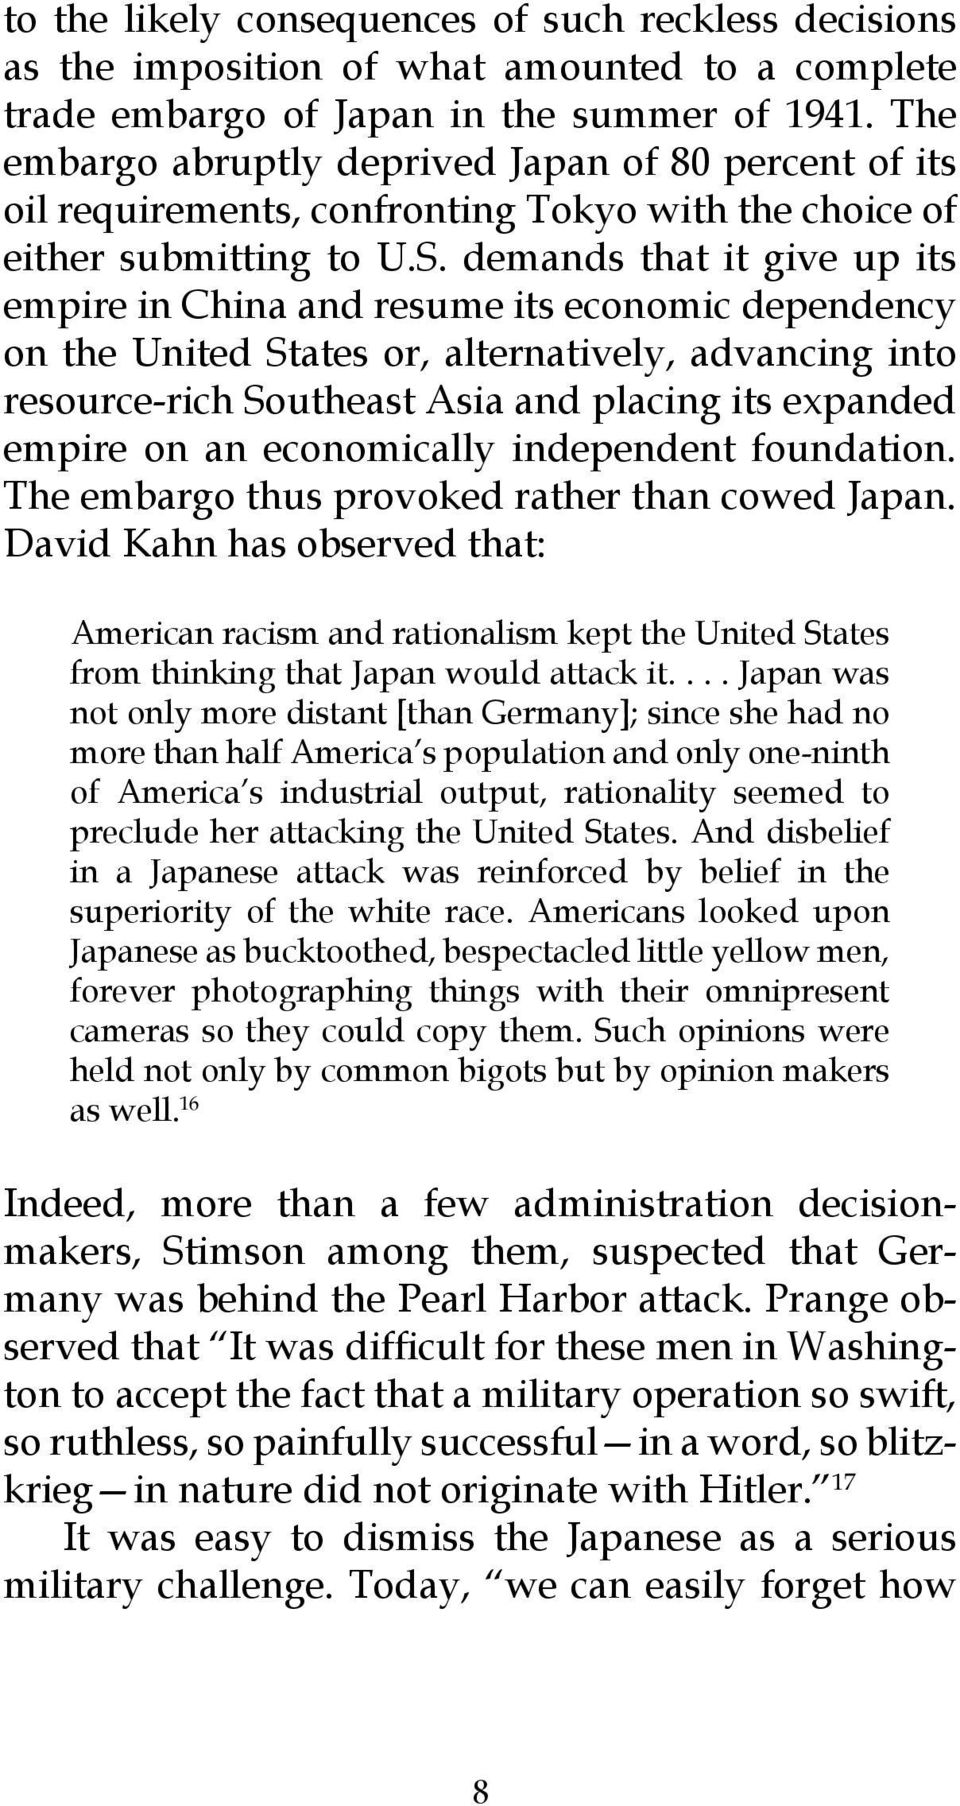 demands that it give up its empire in China and resume its economic dependency on the United States or, alternatively, advancing into resource-rich Southeast Asia and placing its expanded empire on